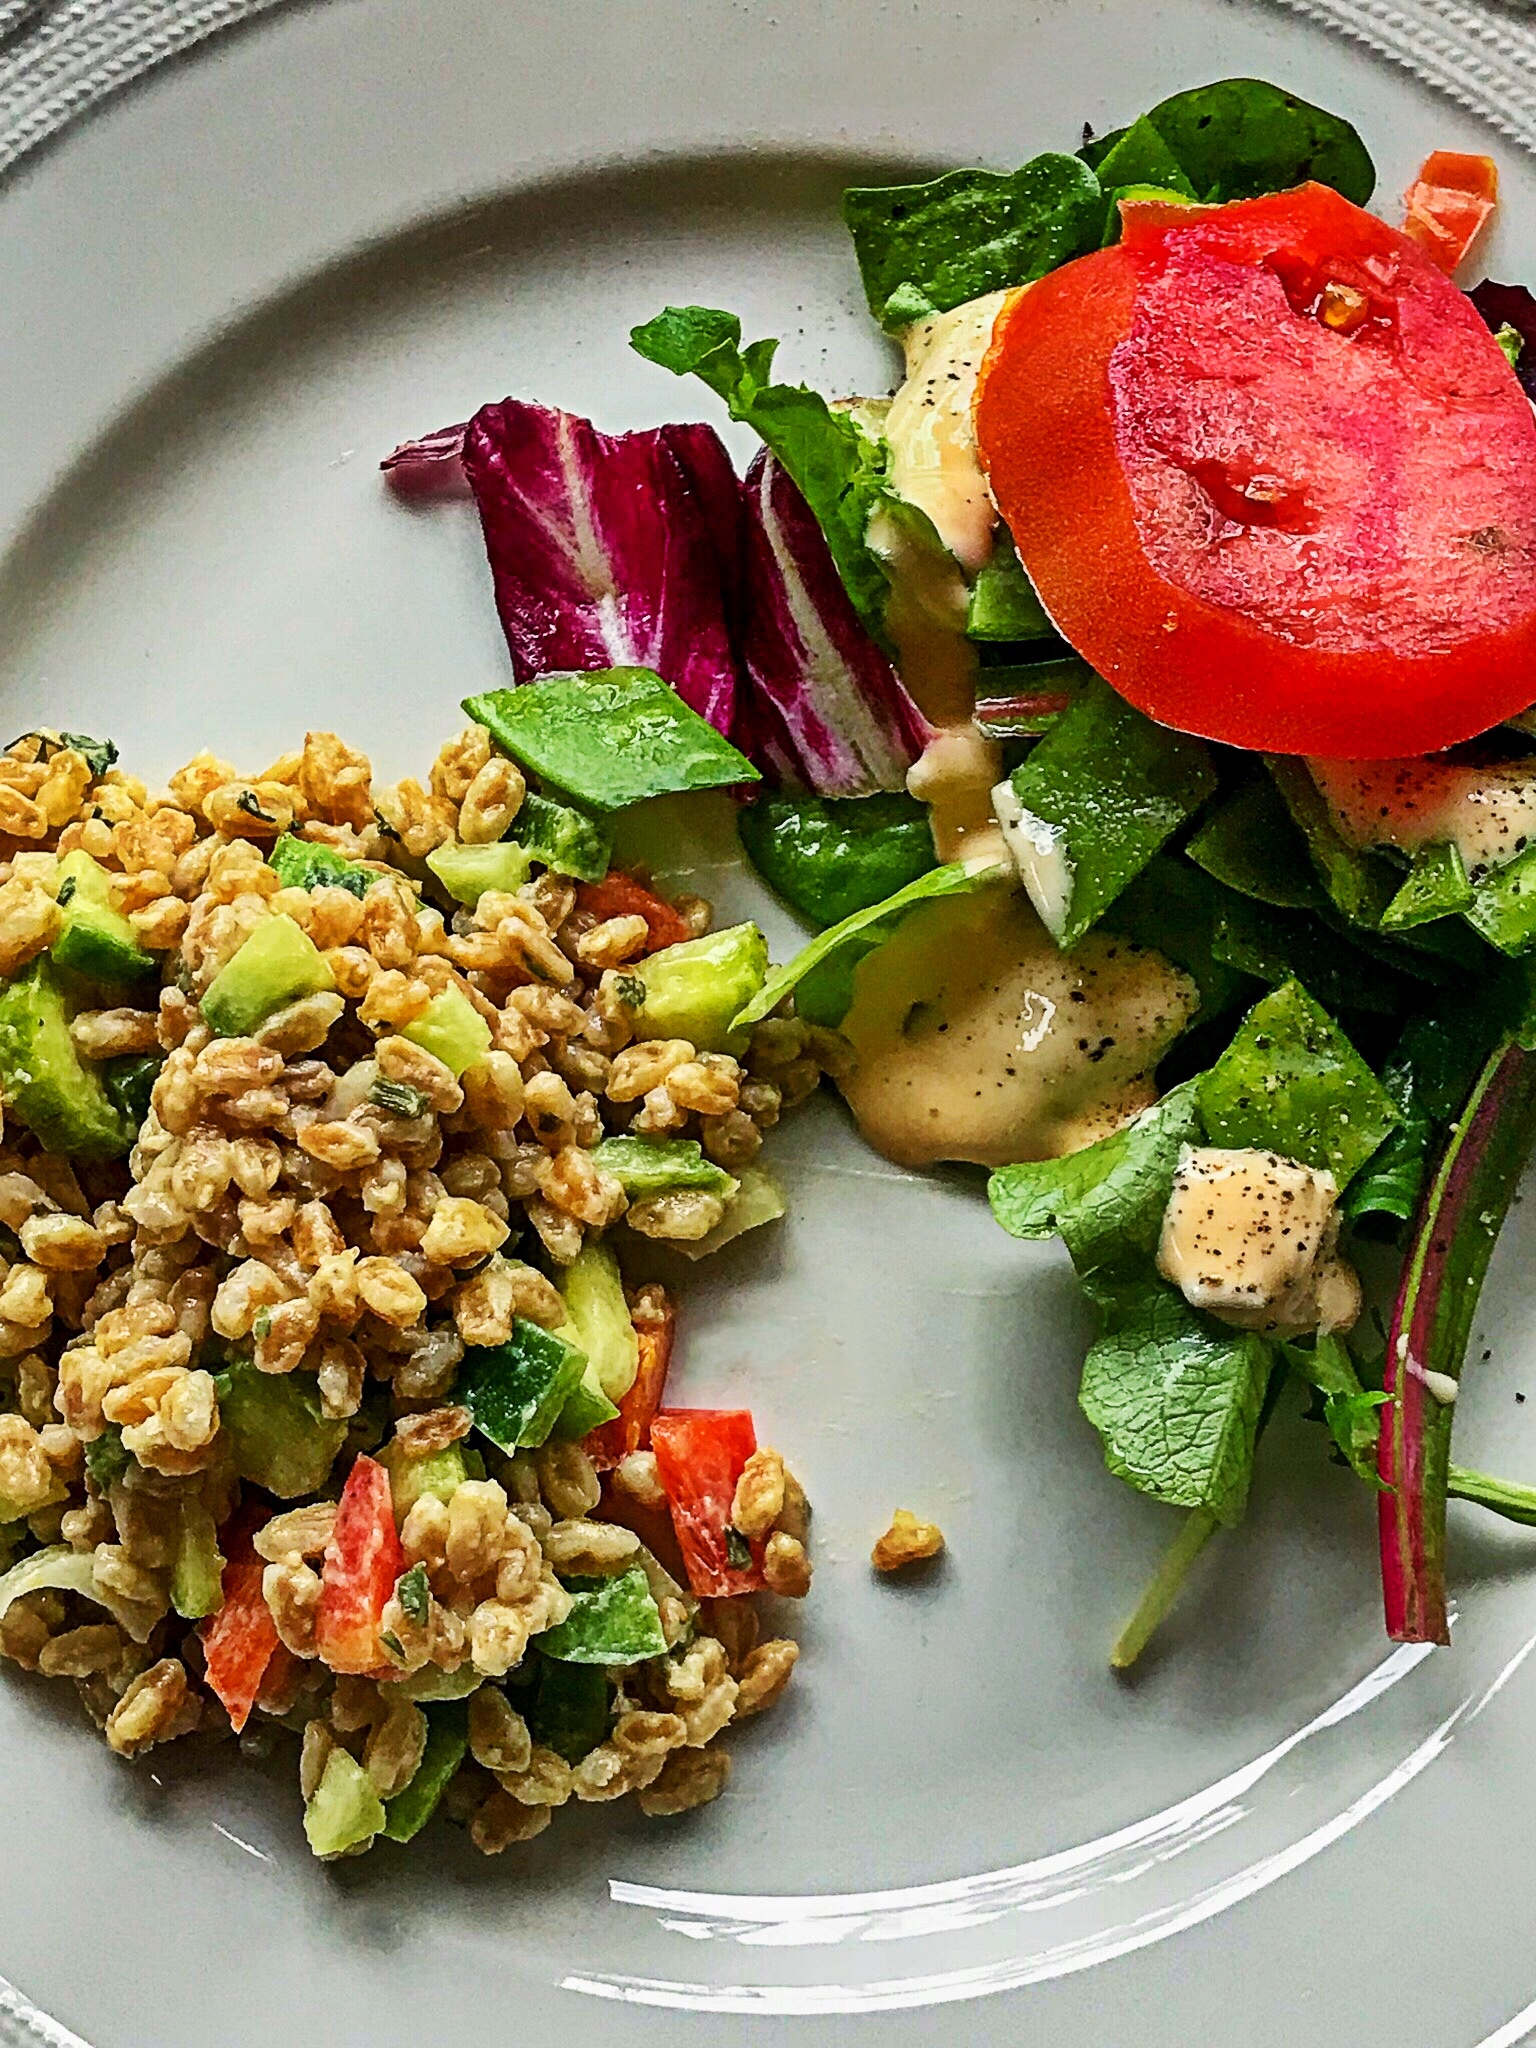 Farro is a grain that is high in protein. I served this salad room temperature, but you can eat it hot or cold.